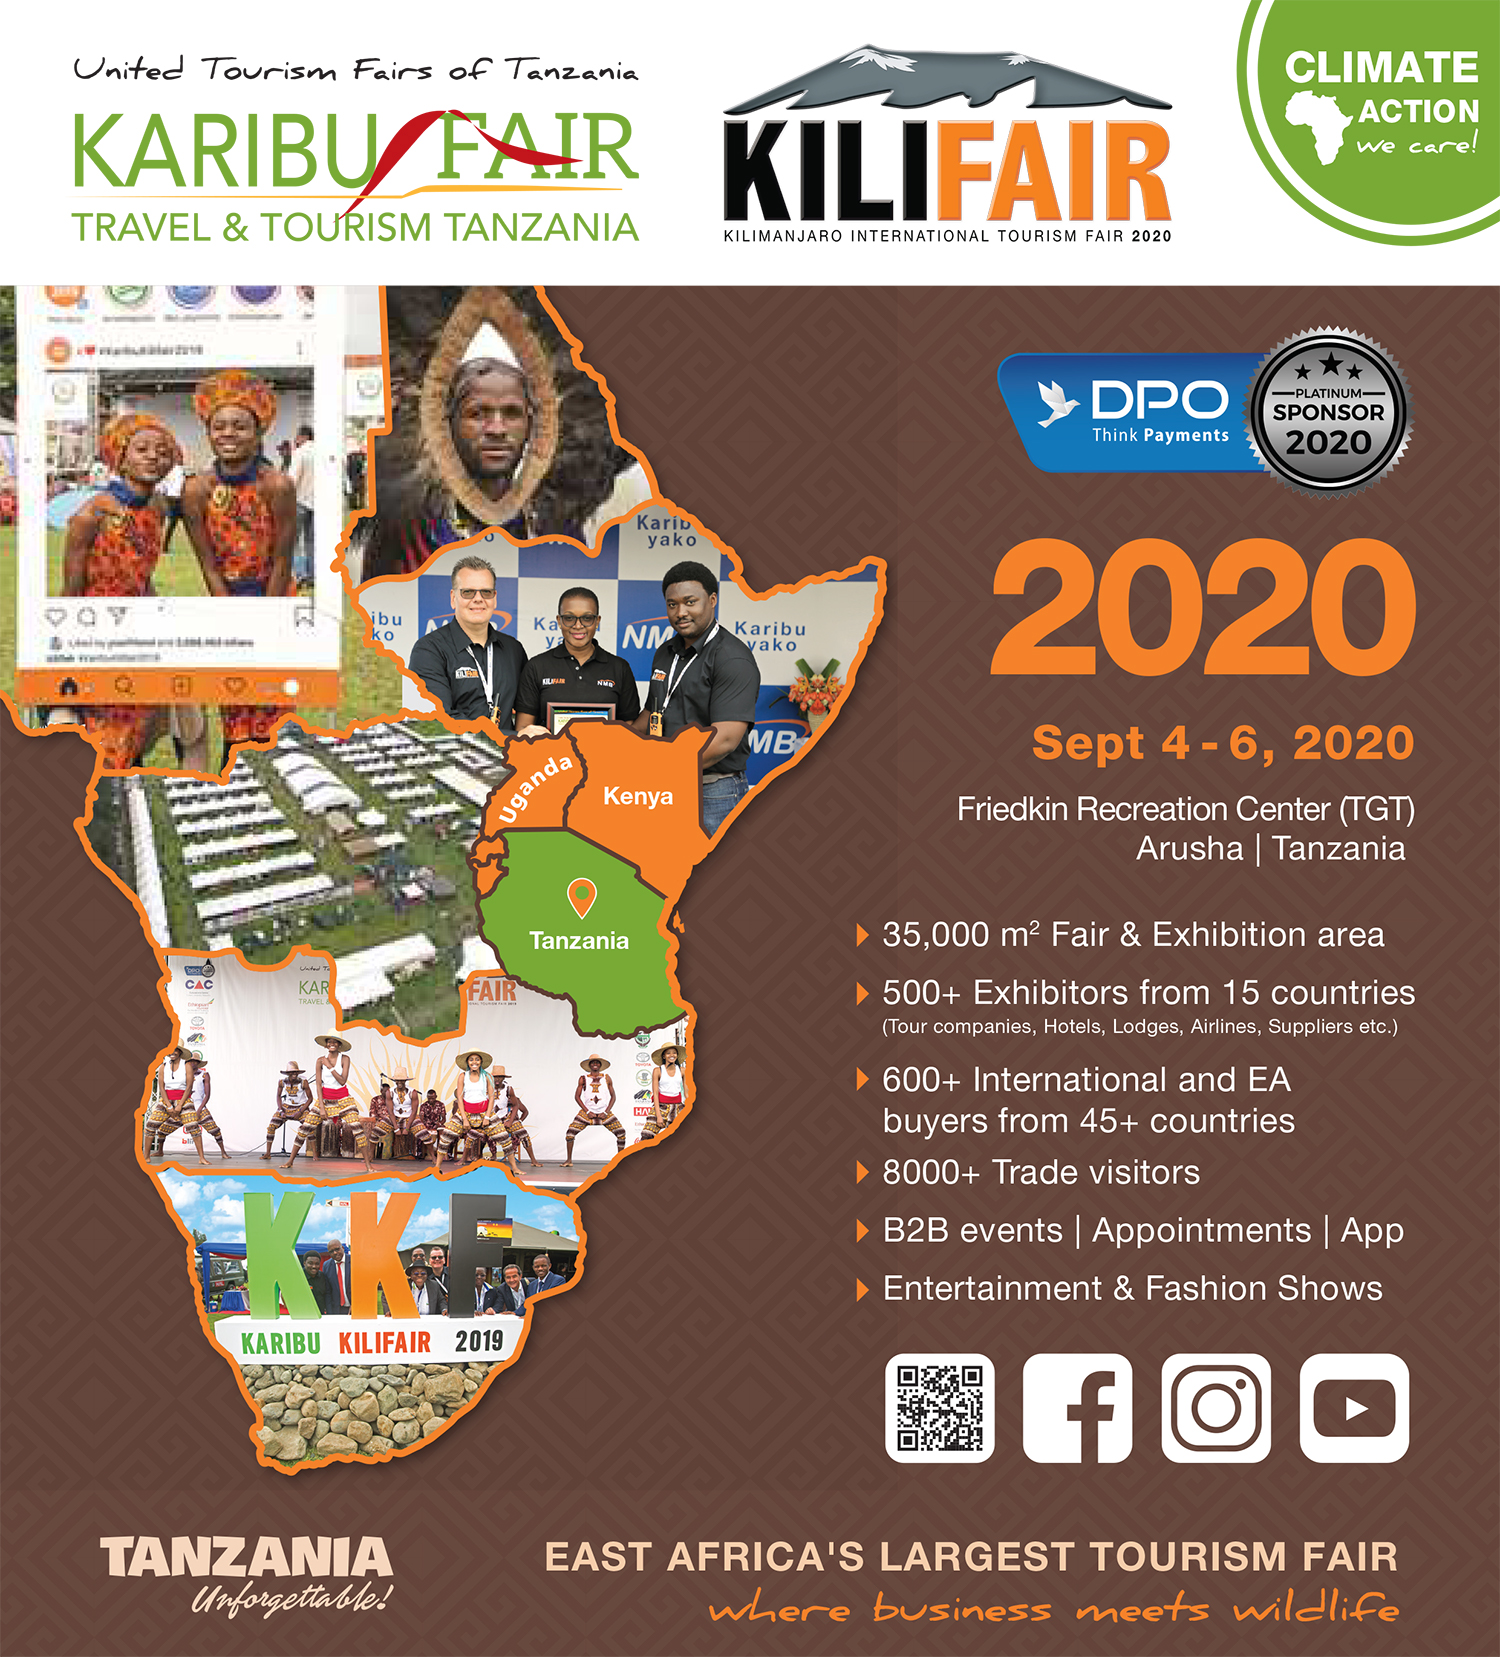 Kilifair featured image